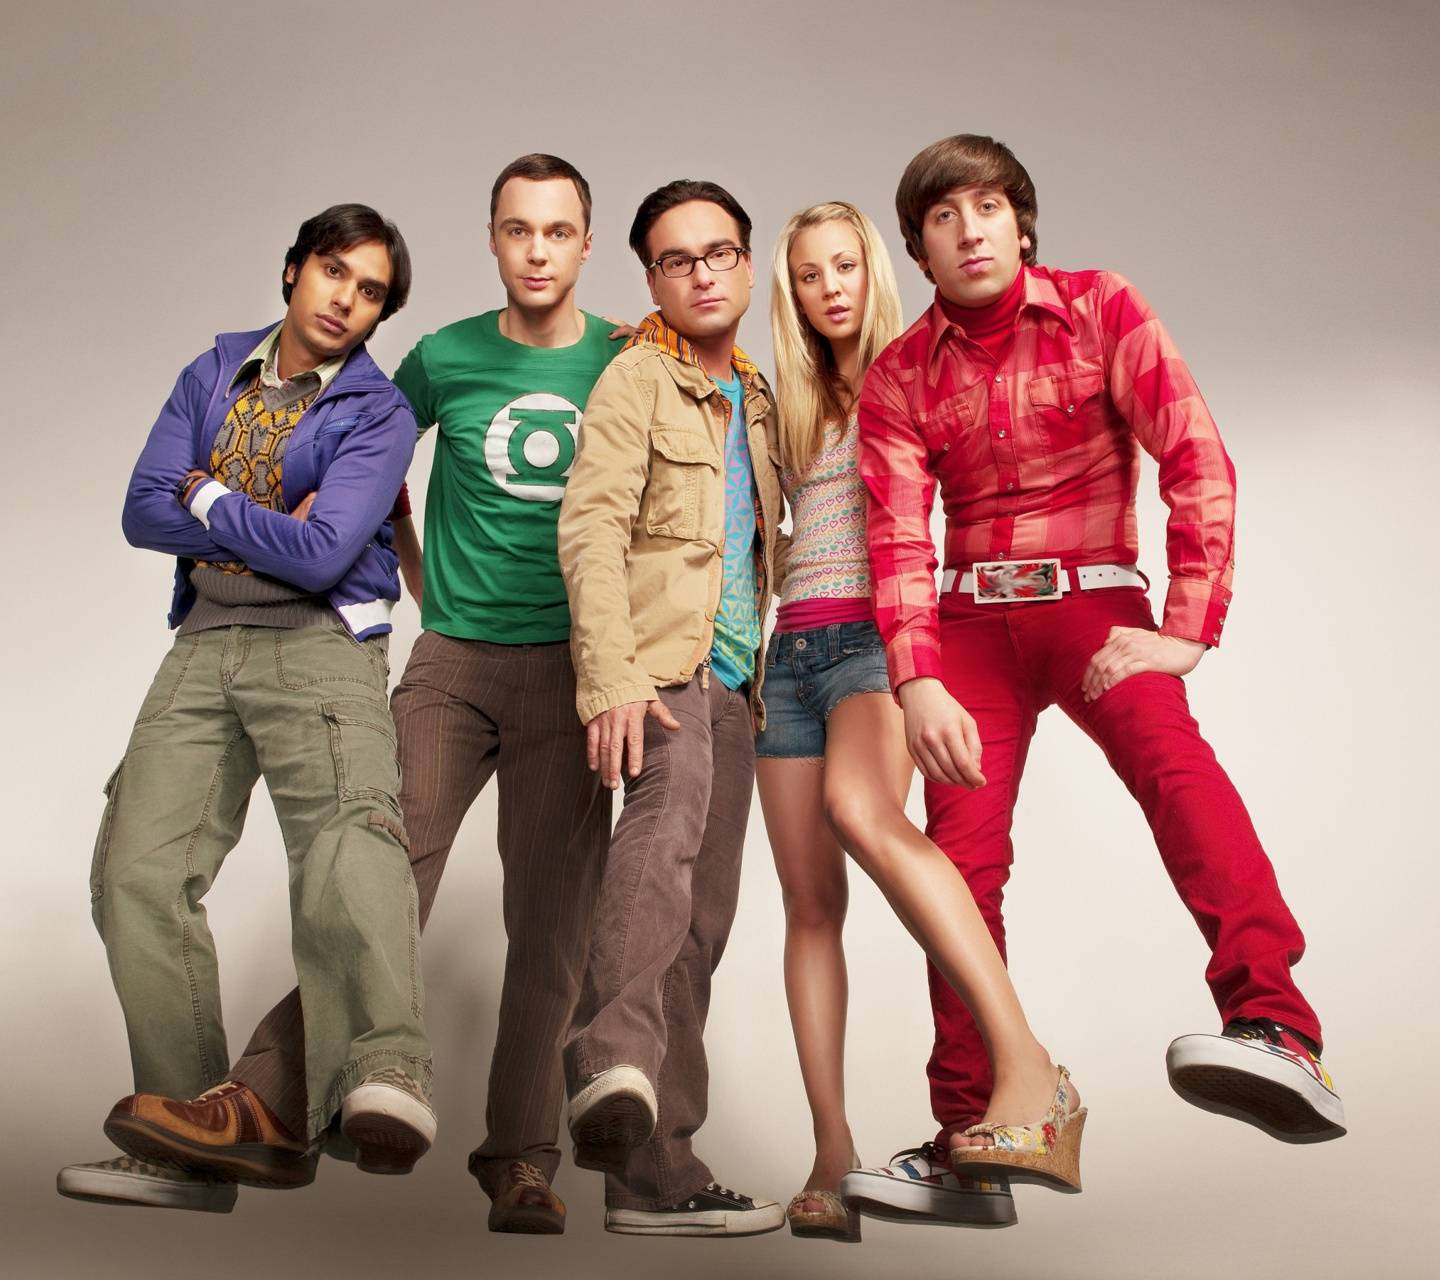 The Big Bang Theory Wallpaper By Ambition Bc Free On Zedge